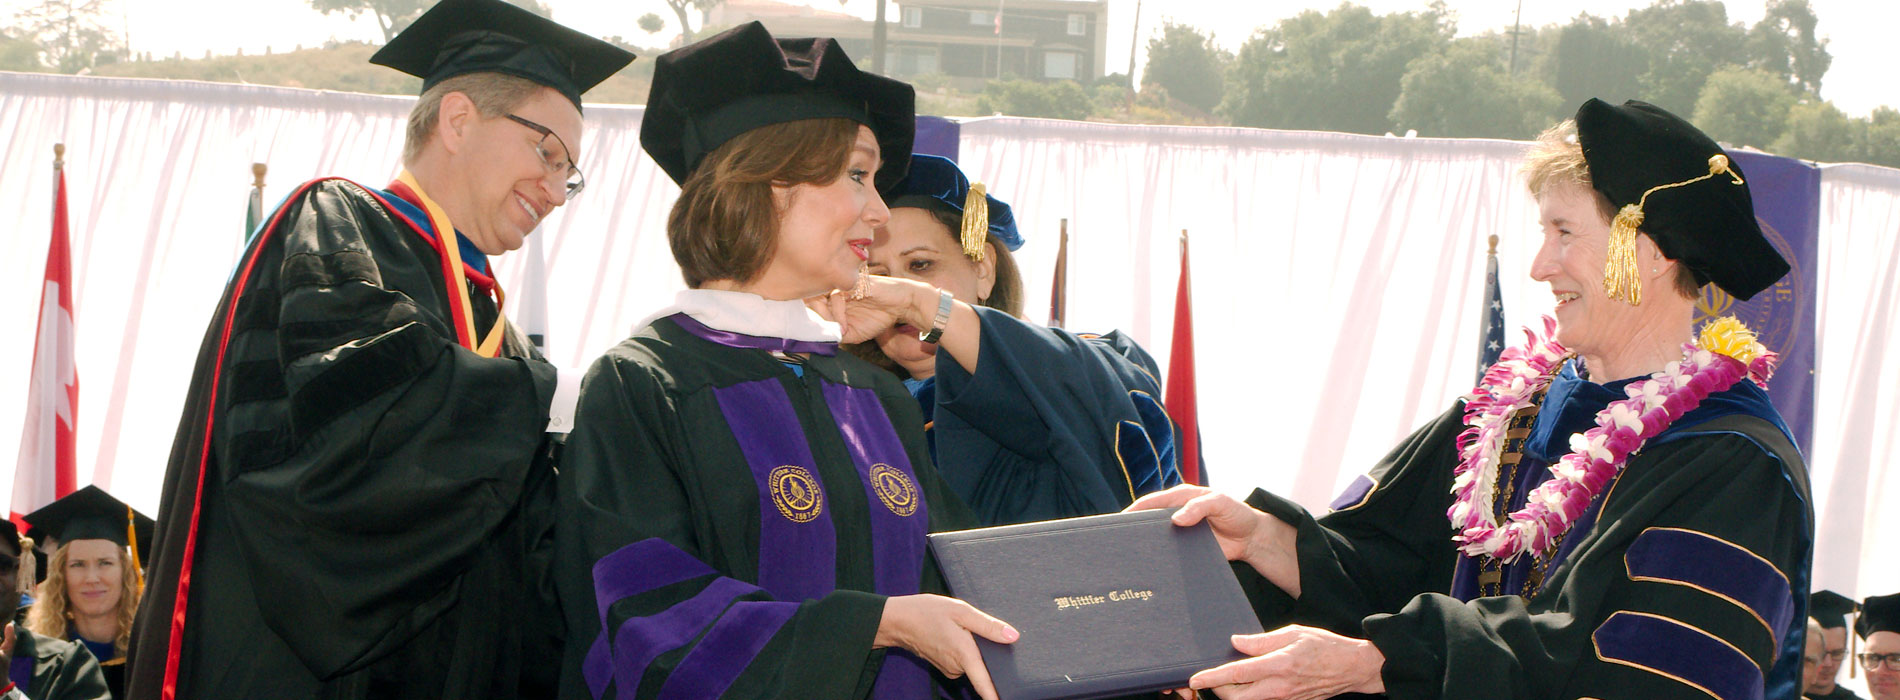 Maria Contreras-Sweet Receives Honorary Degree from Whittier College